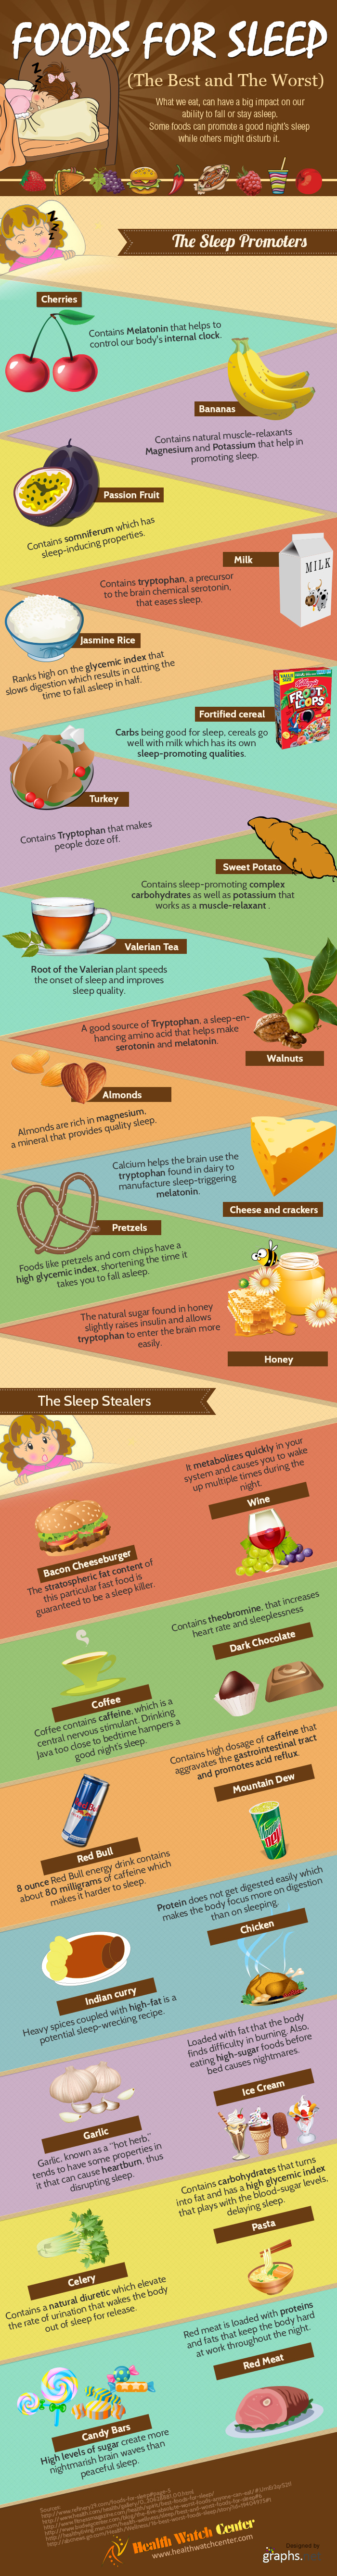 Foods For Sleep- The Best and The Worst